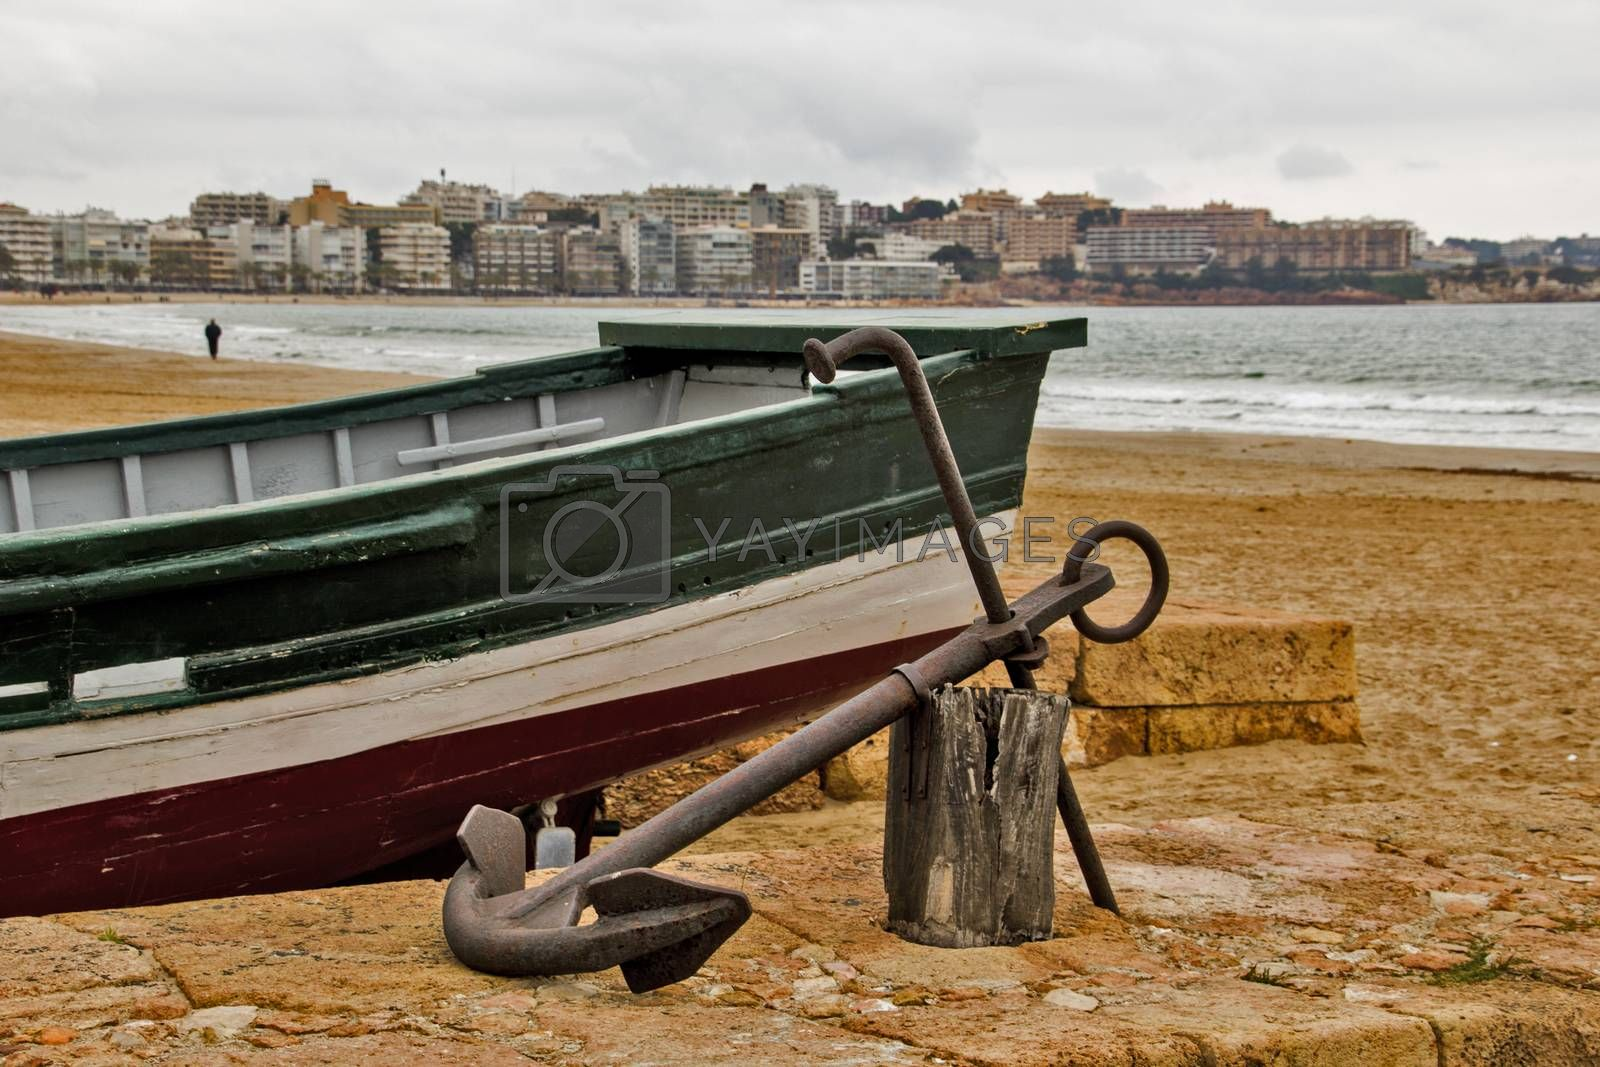 Fishing boat anchored in the sand in Salou, Catalonia, at the seaside and a buildings background